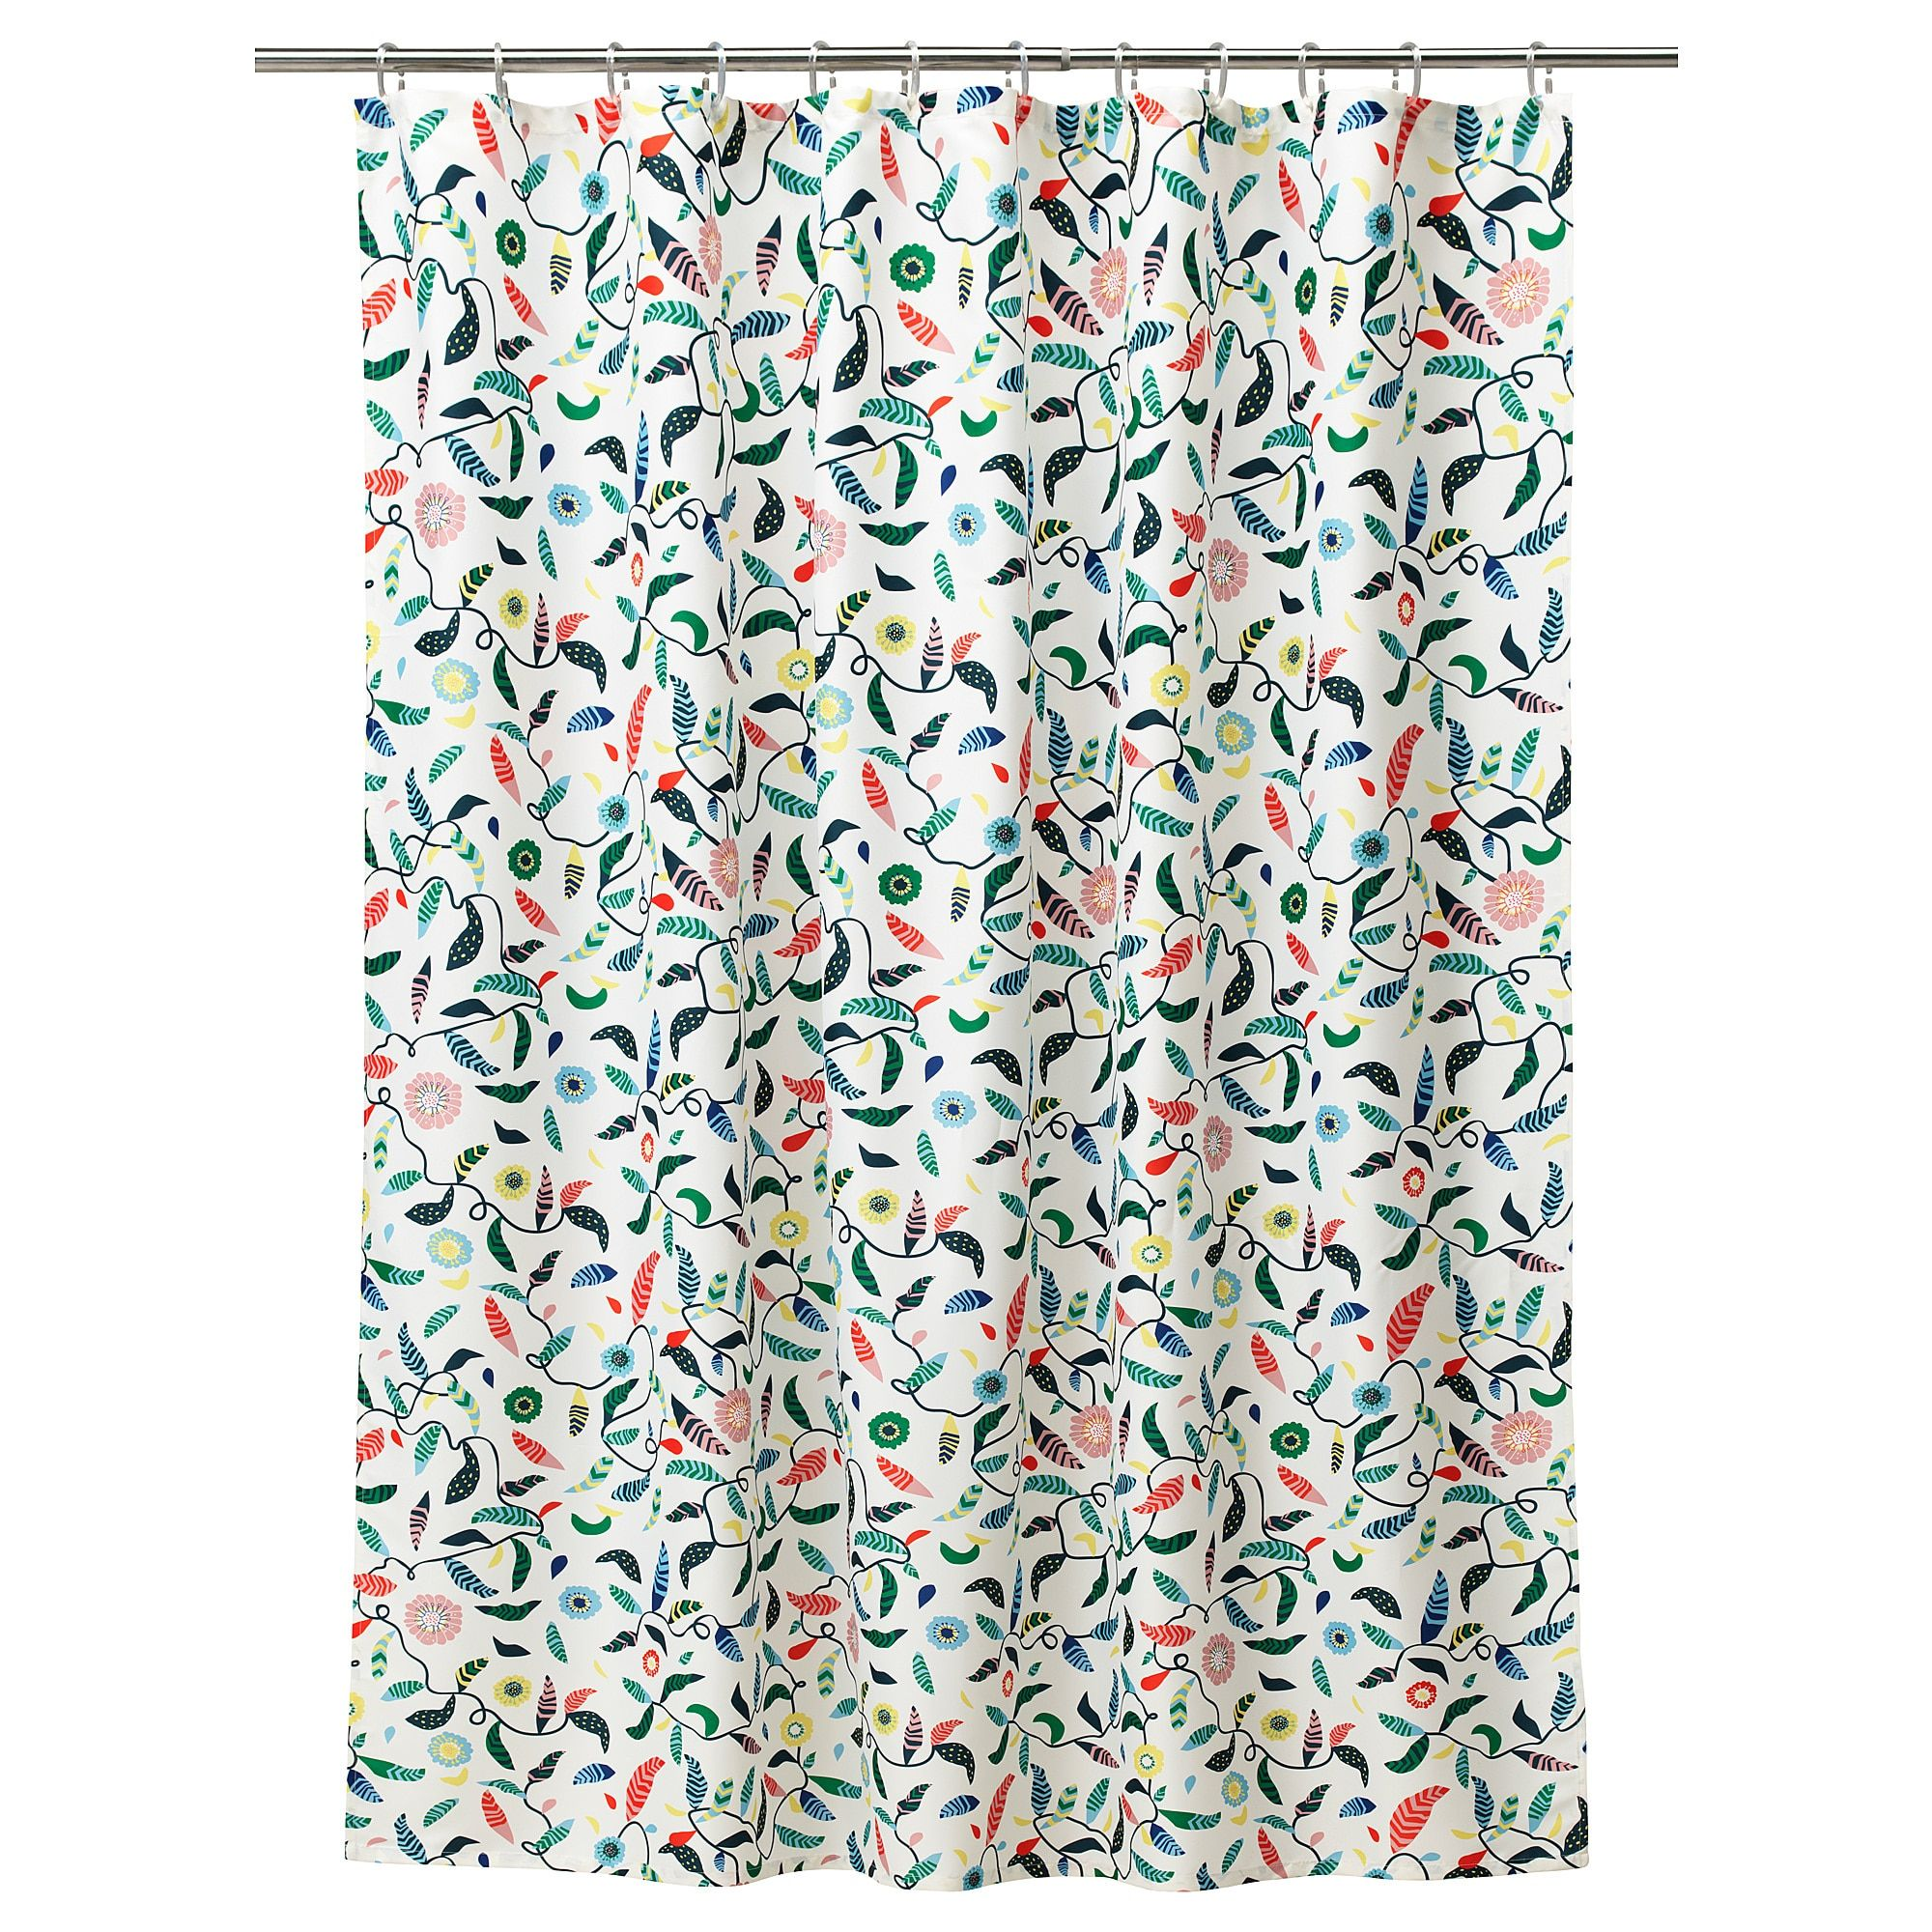 Sandbredan Shower Curtain Multicolor Colorful Shower Curtain